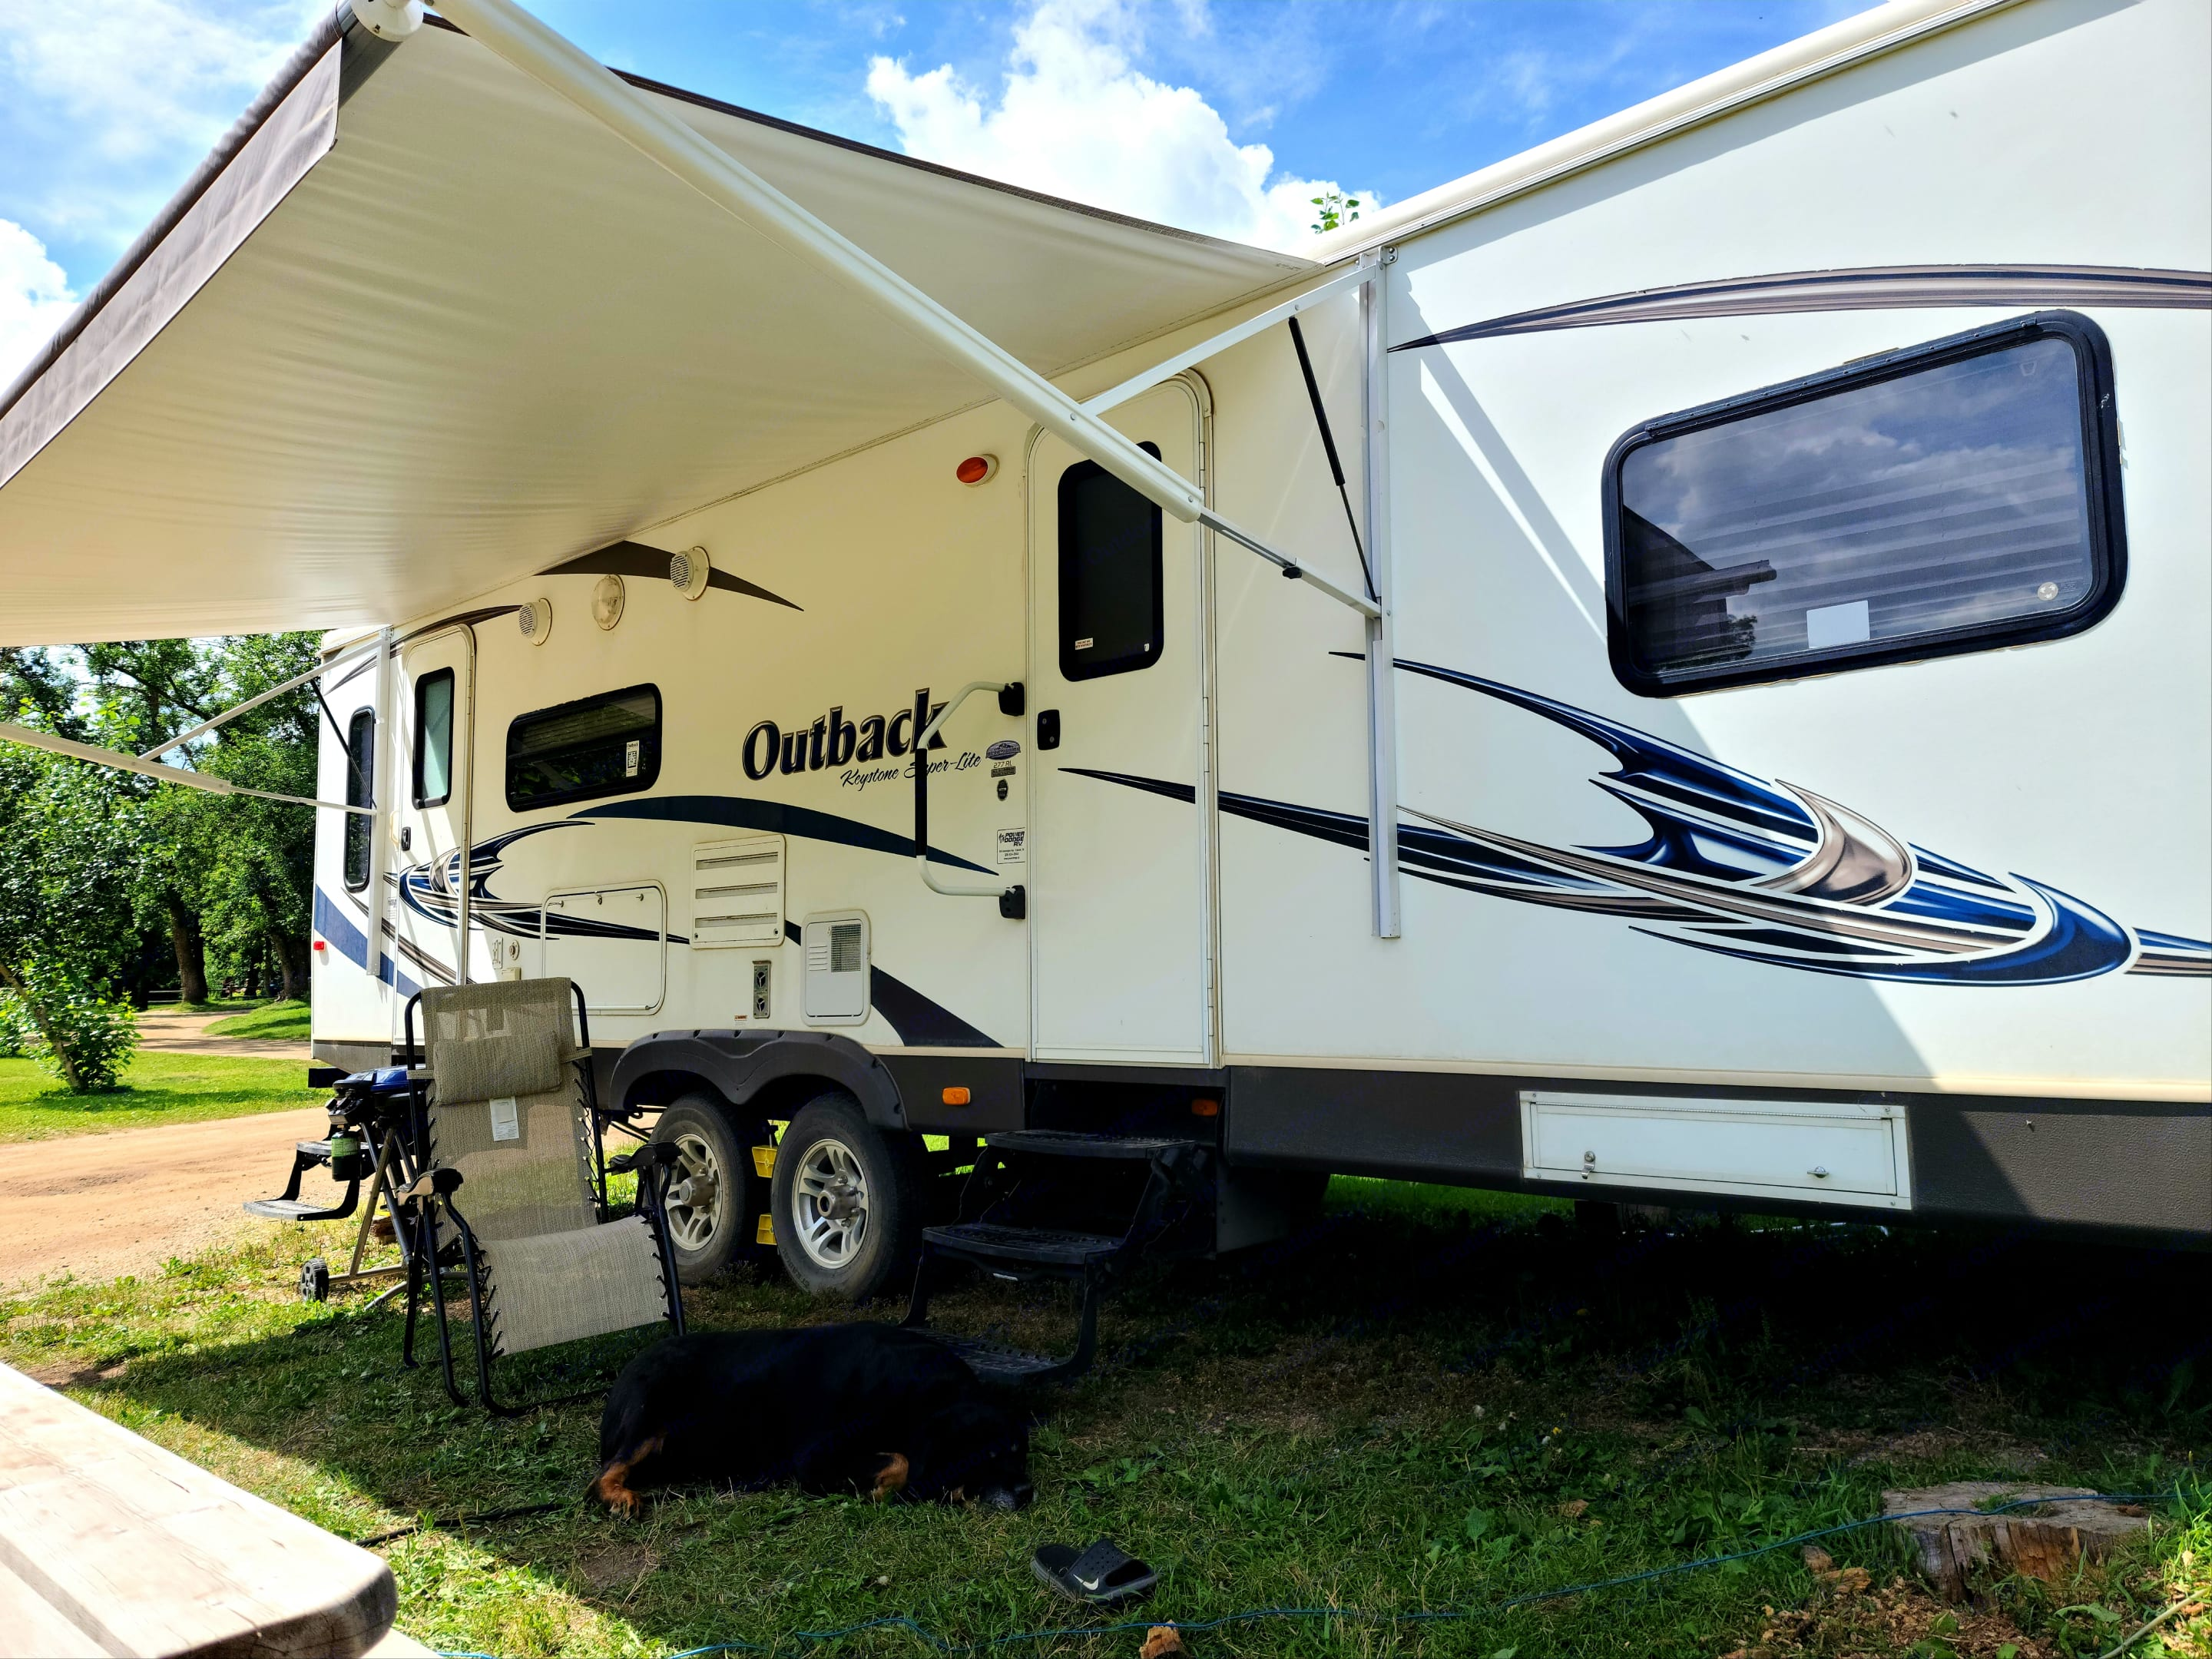 Outback Campers Drover 2013